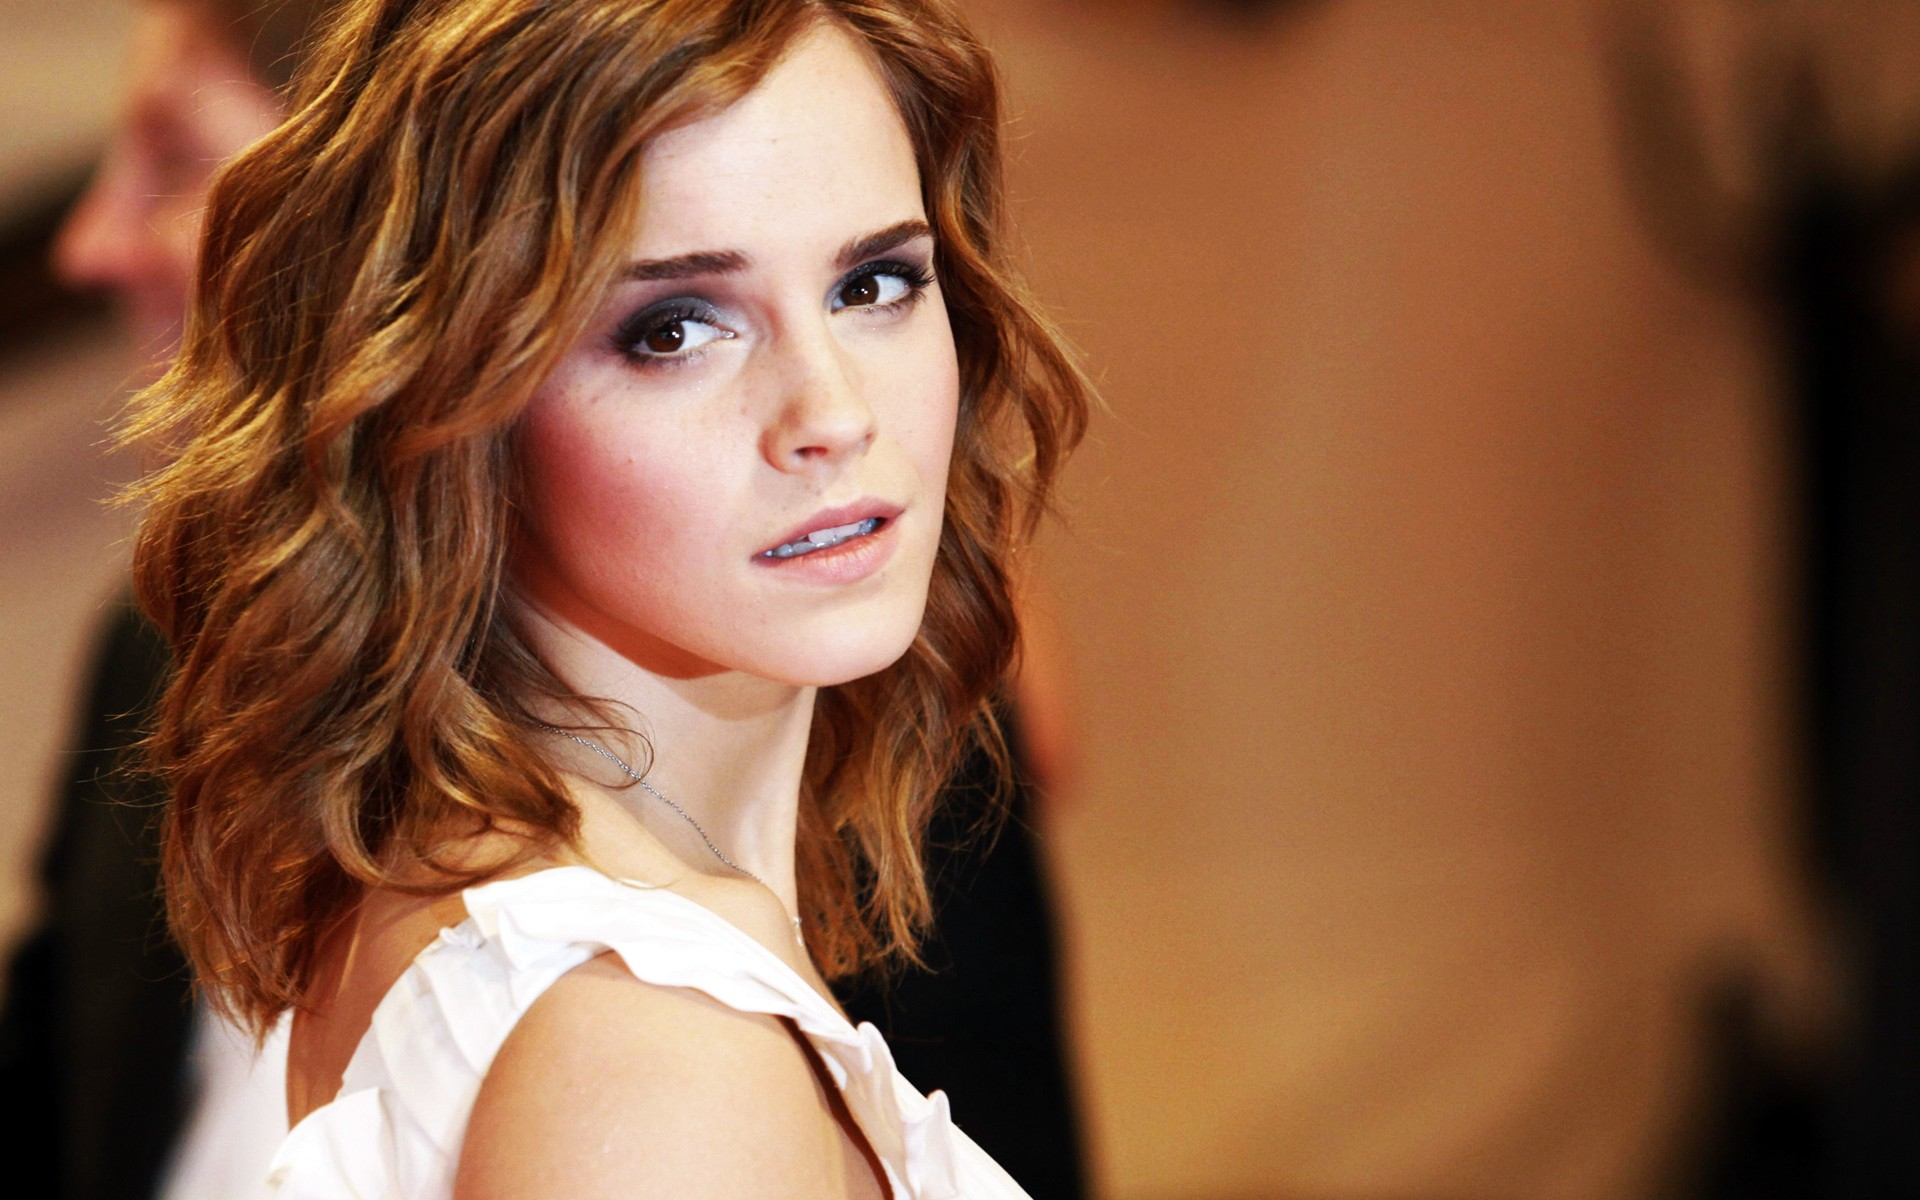 Emma Watson at Metropolitan Muesum 2010 wallpaper